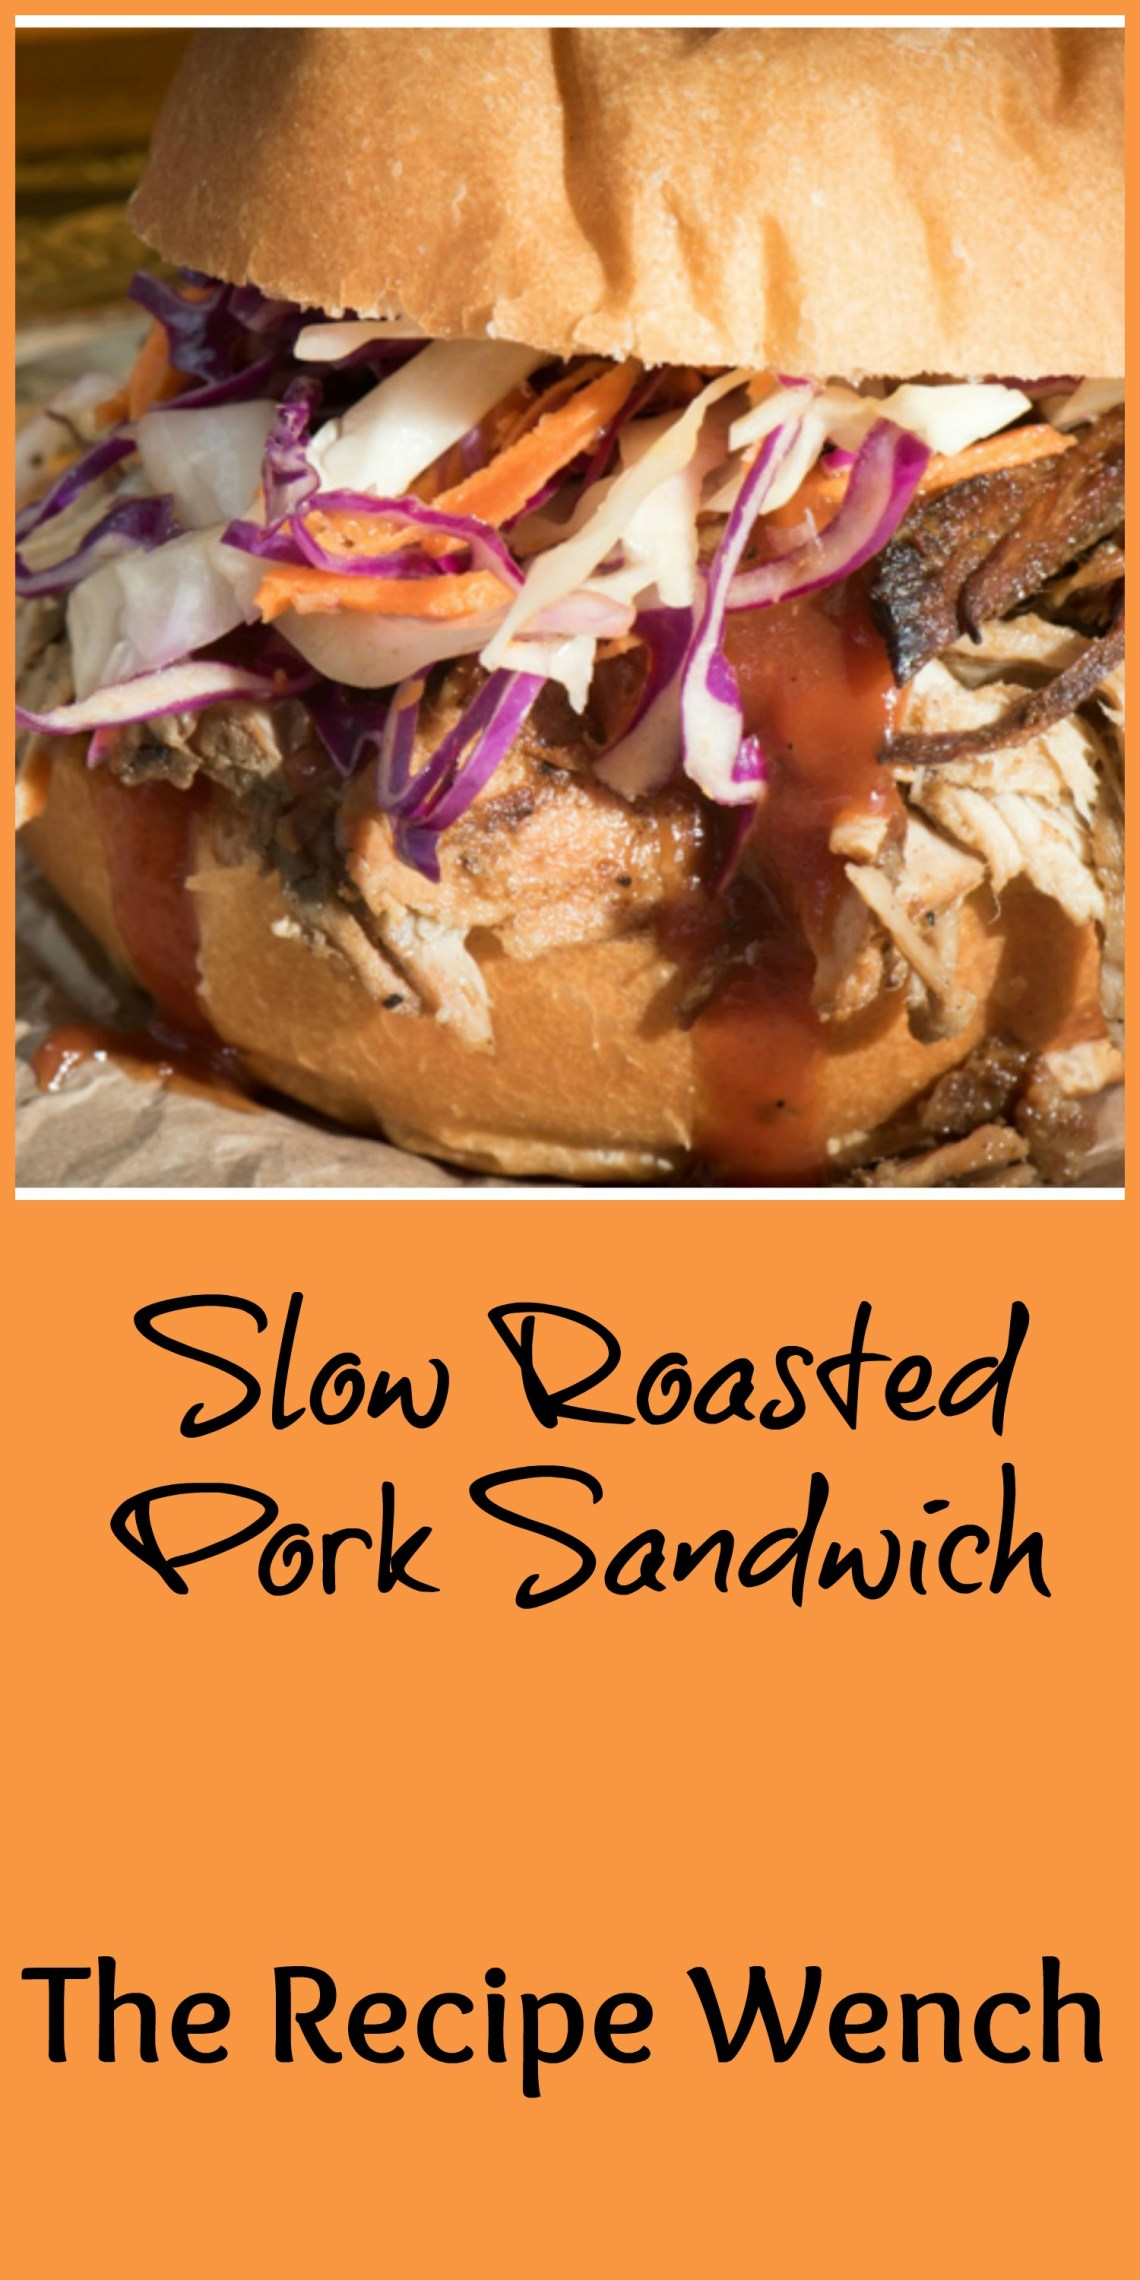 Slow roasted pork sandwich pm